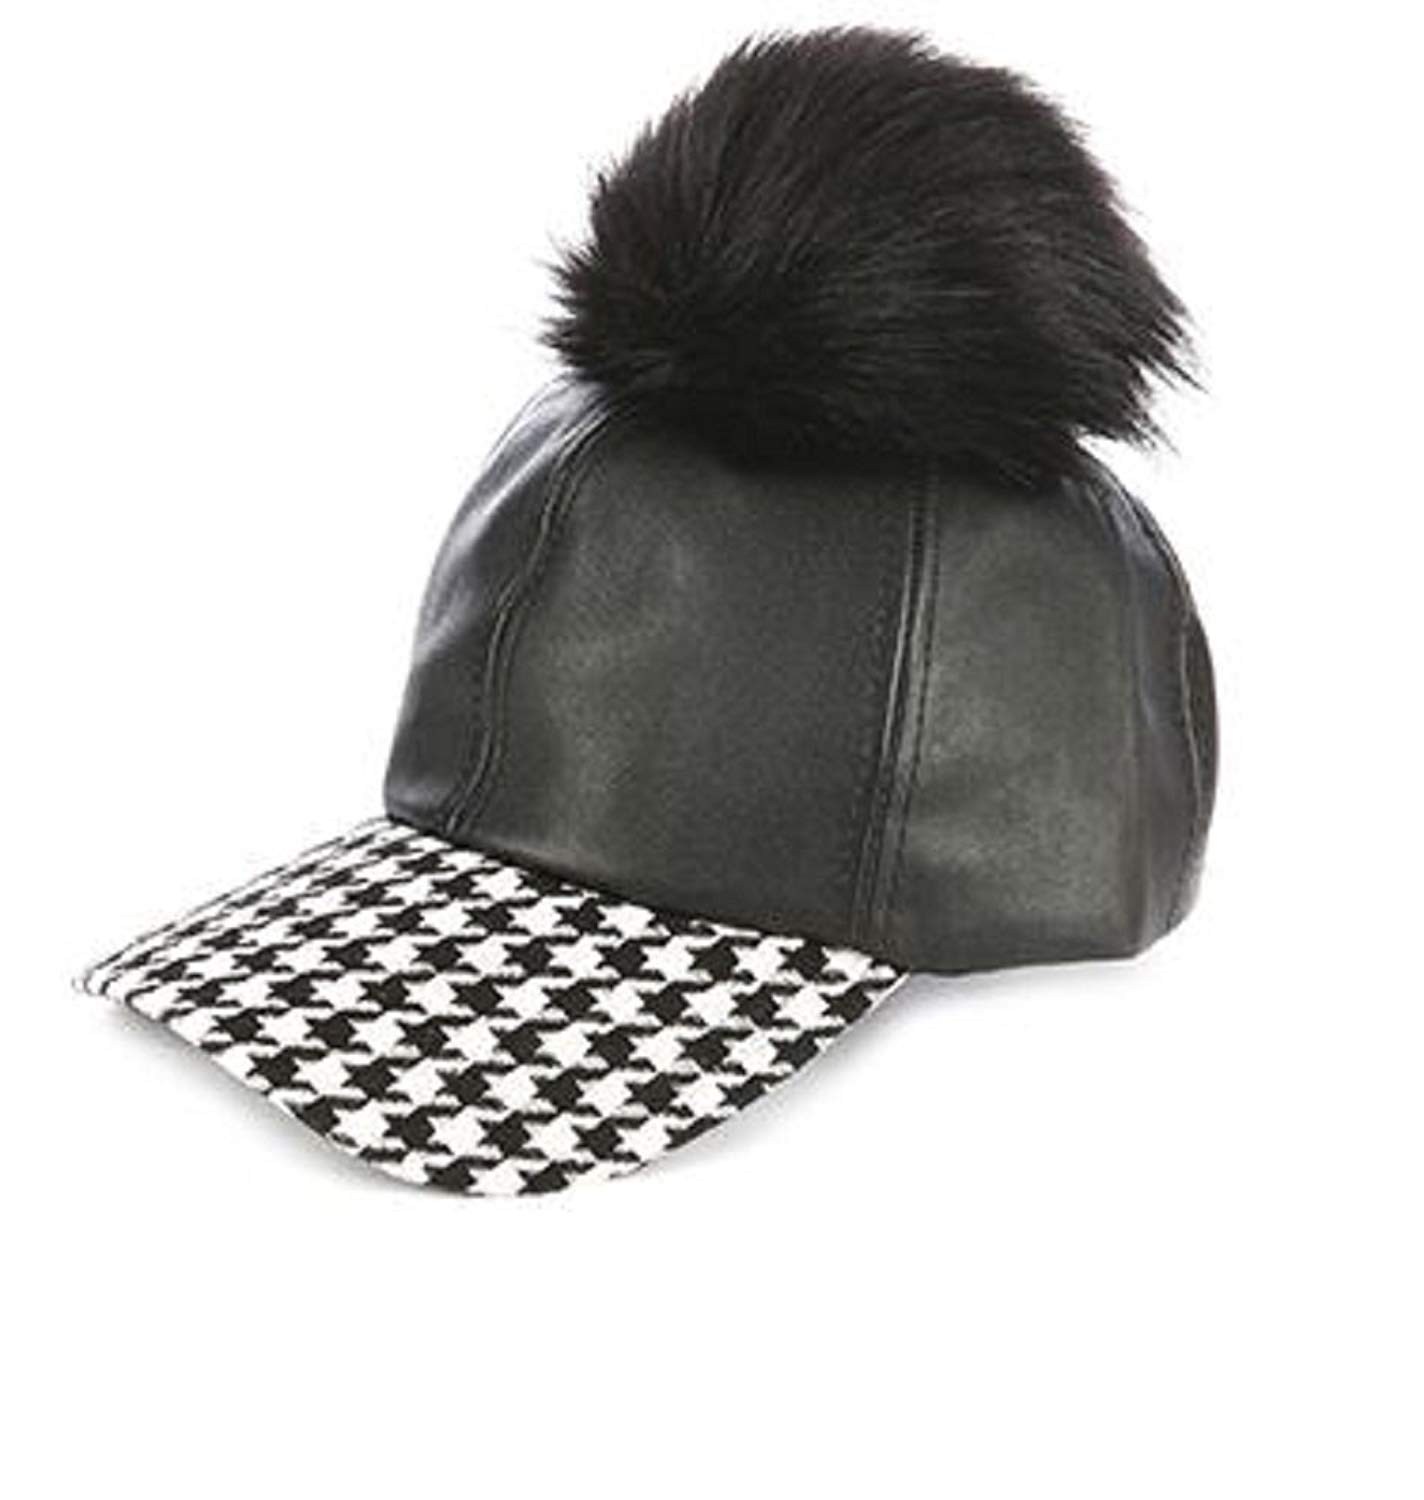 948d6c1d Get Quotations · RI001 Faux Fur Pom Pom Baseball Cap in Faux Suede Black  with Houndstooth Print Visor